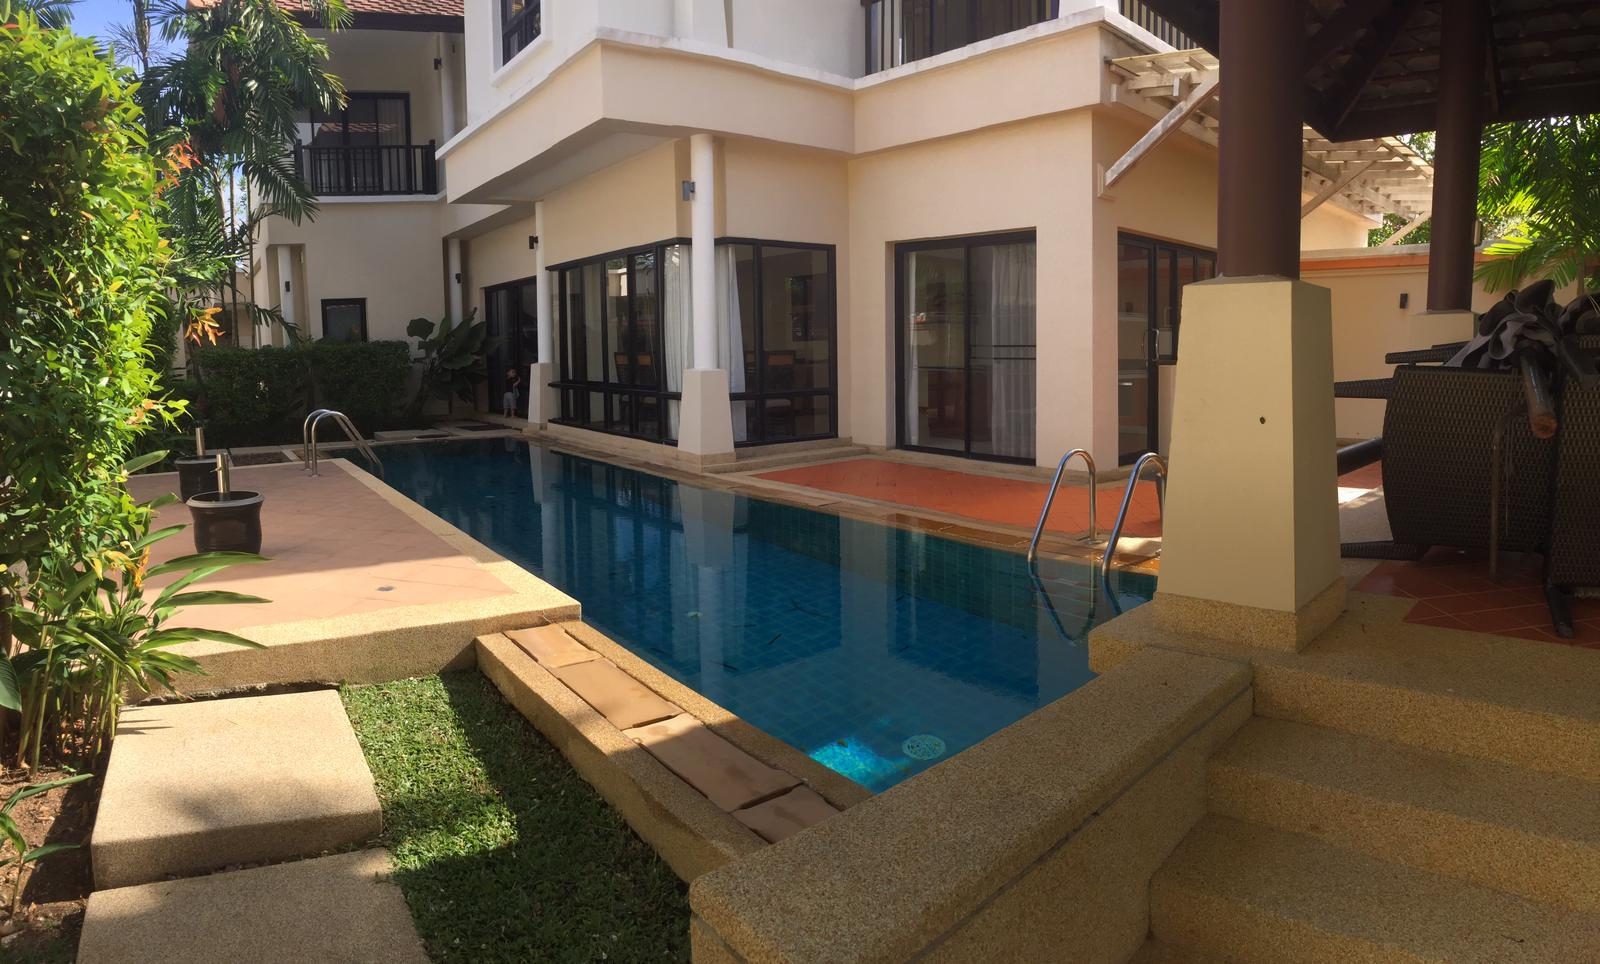 See Laguna Village 3 Bedroom Private Pool details